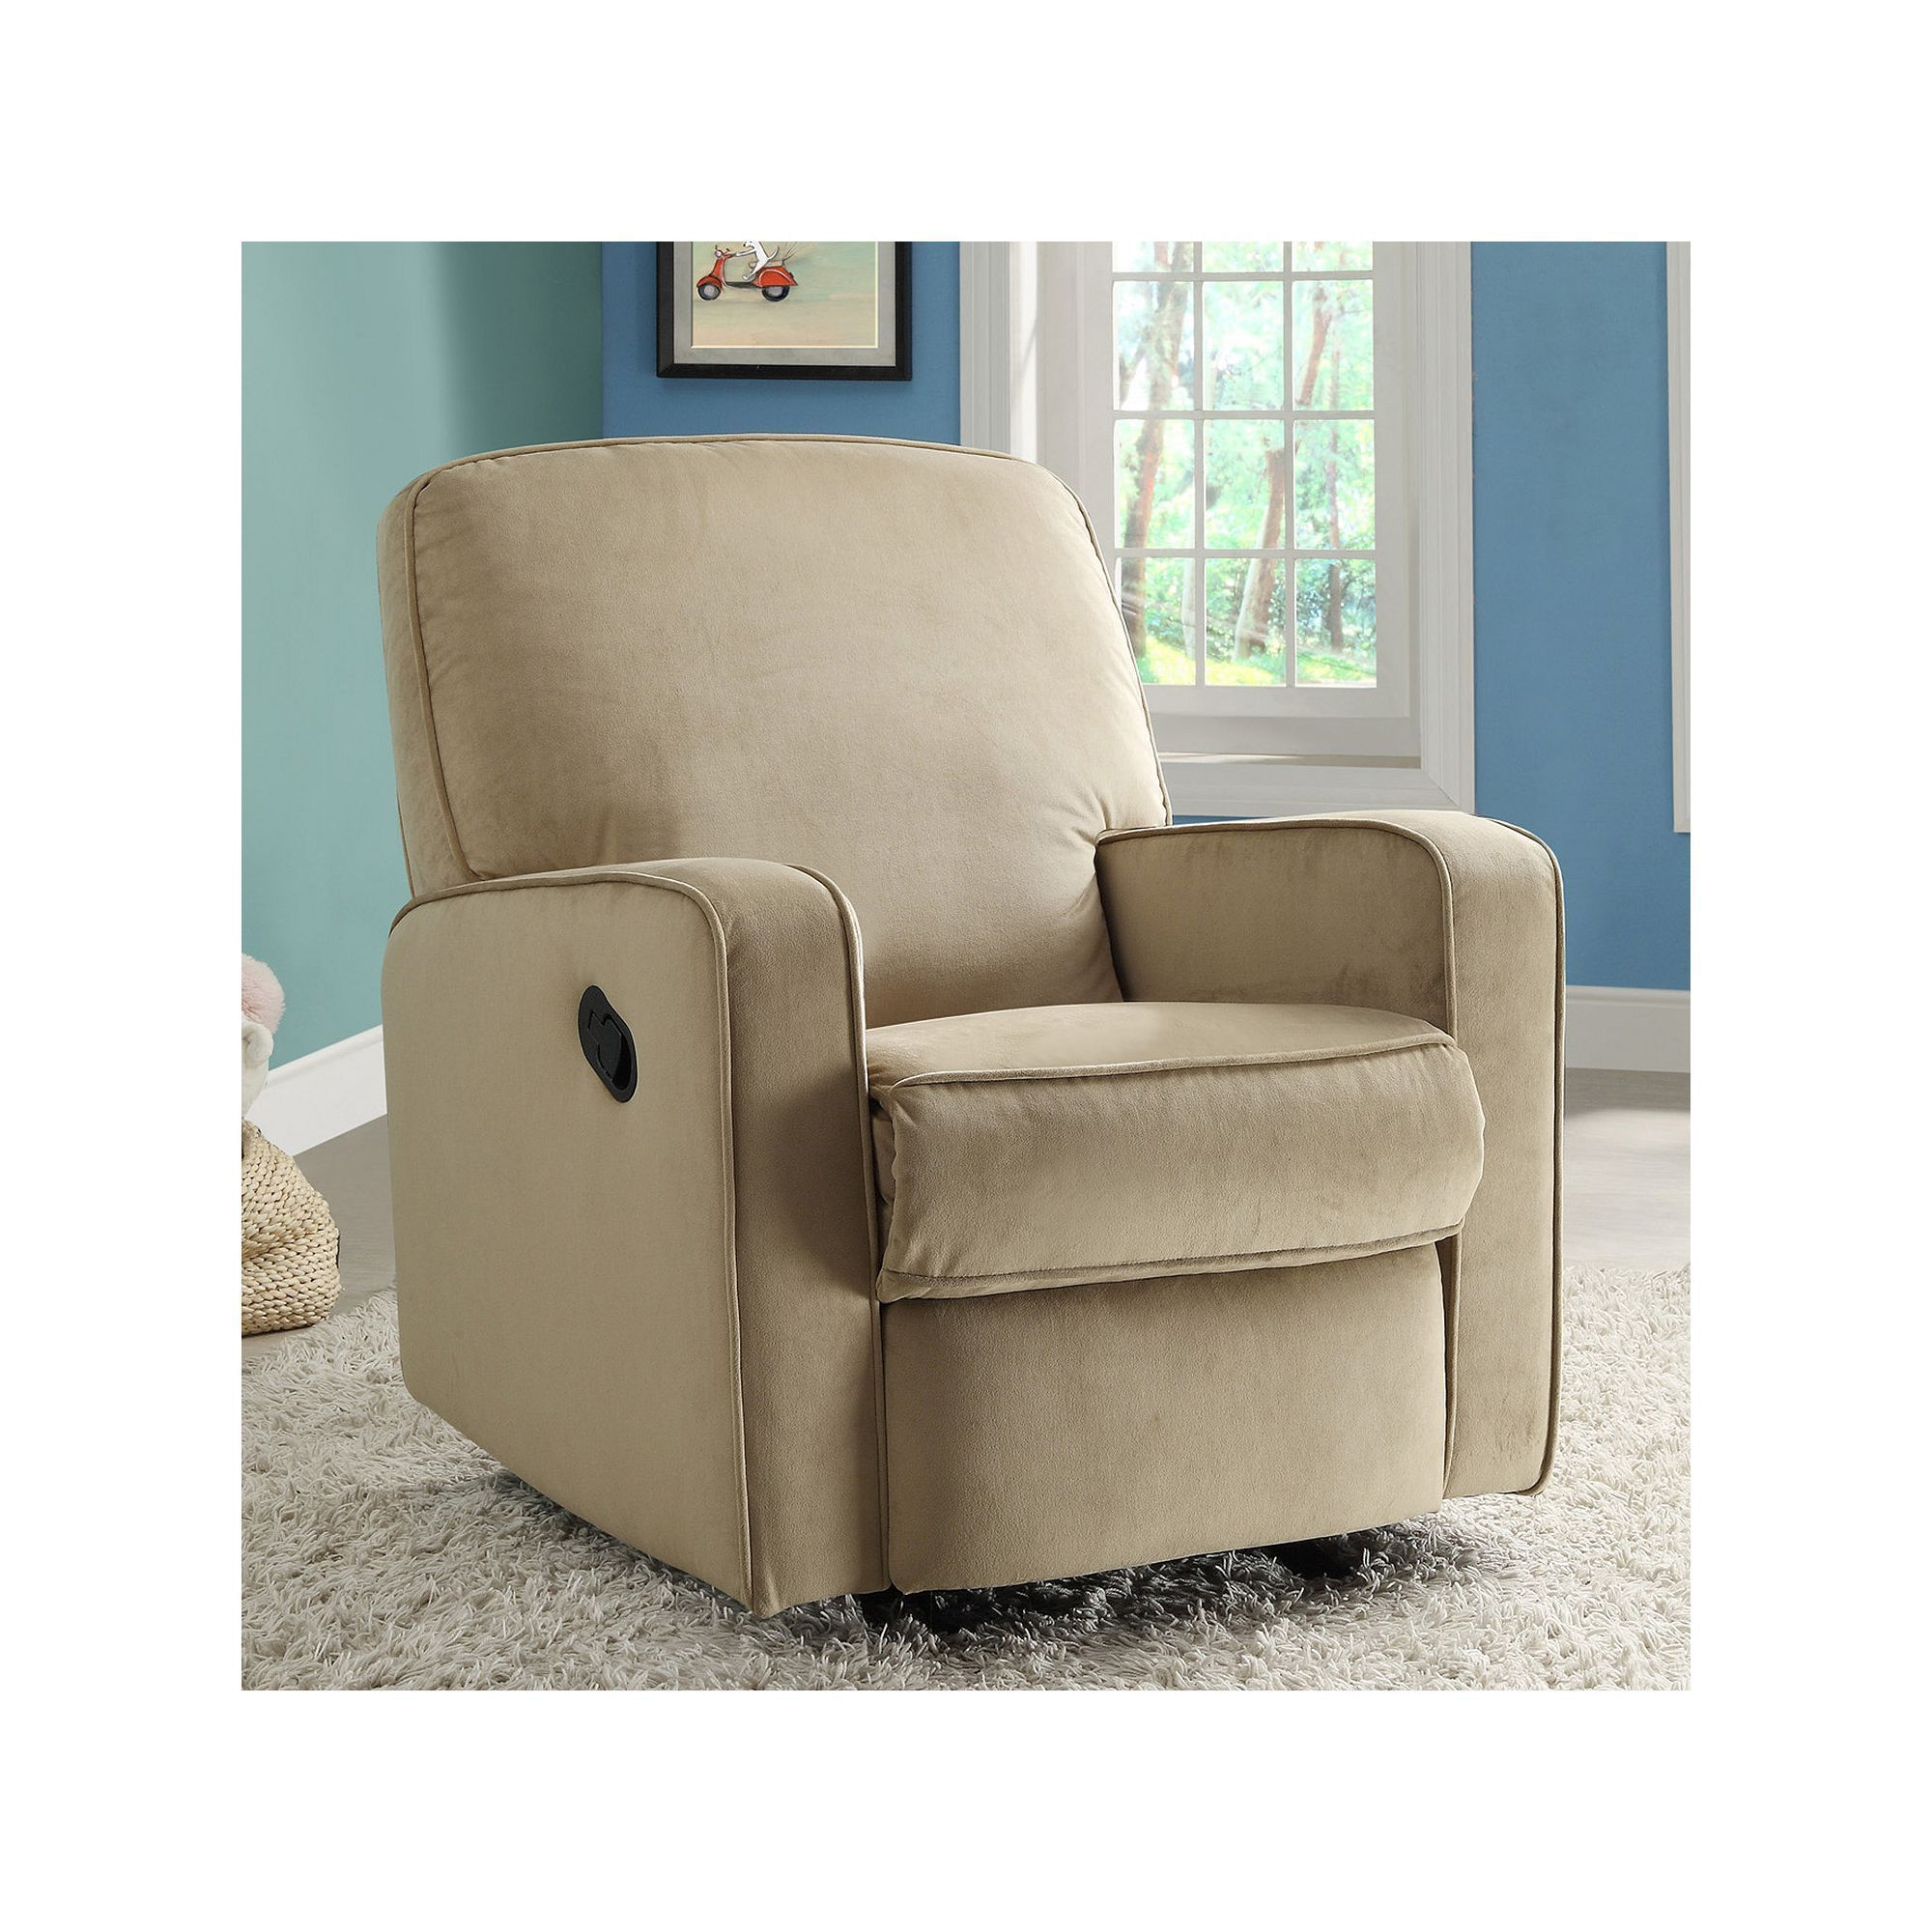 Pulaski Sutton Stella Swivel Glider Recliner Chair Other Clrs